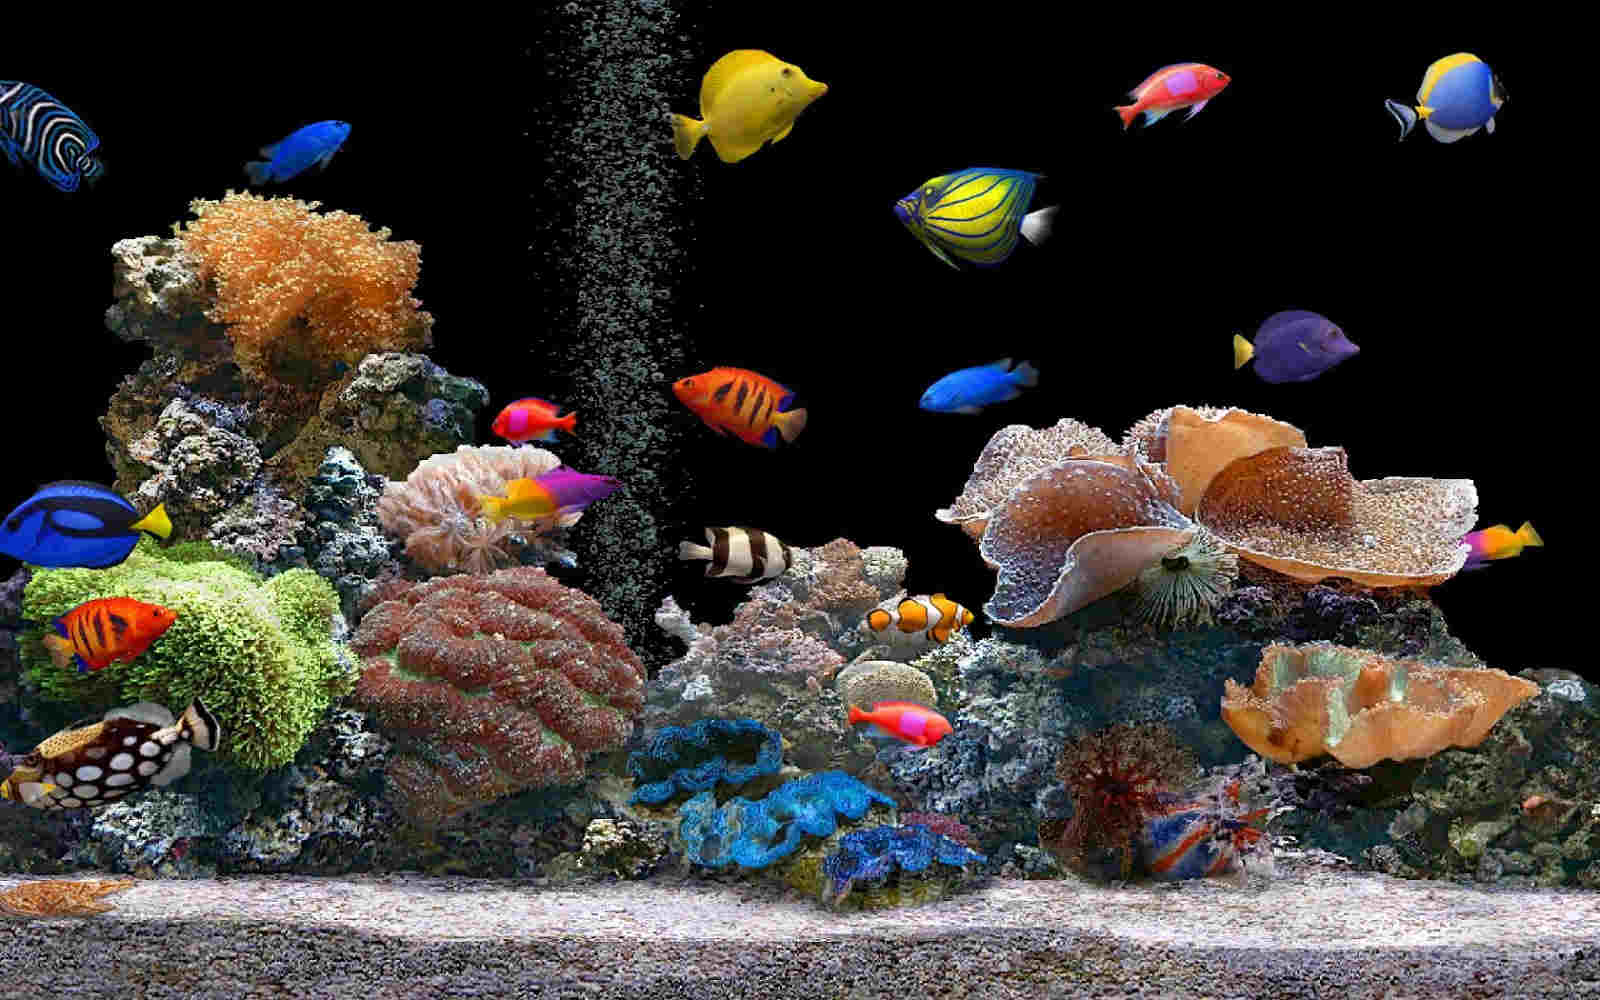 Aquarium HD Wallpaper For You